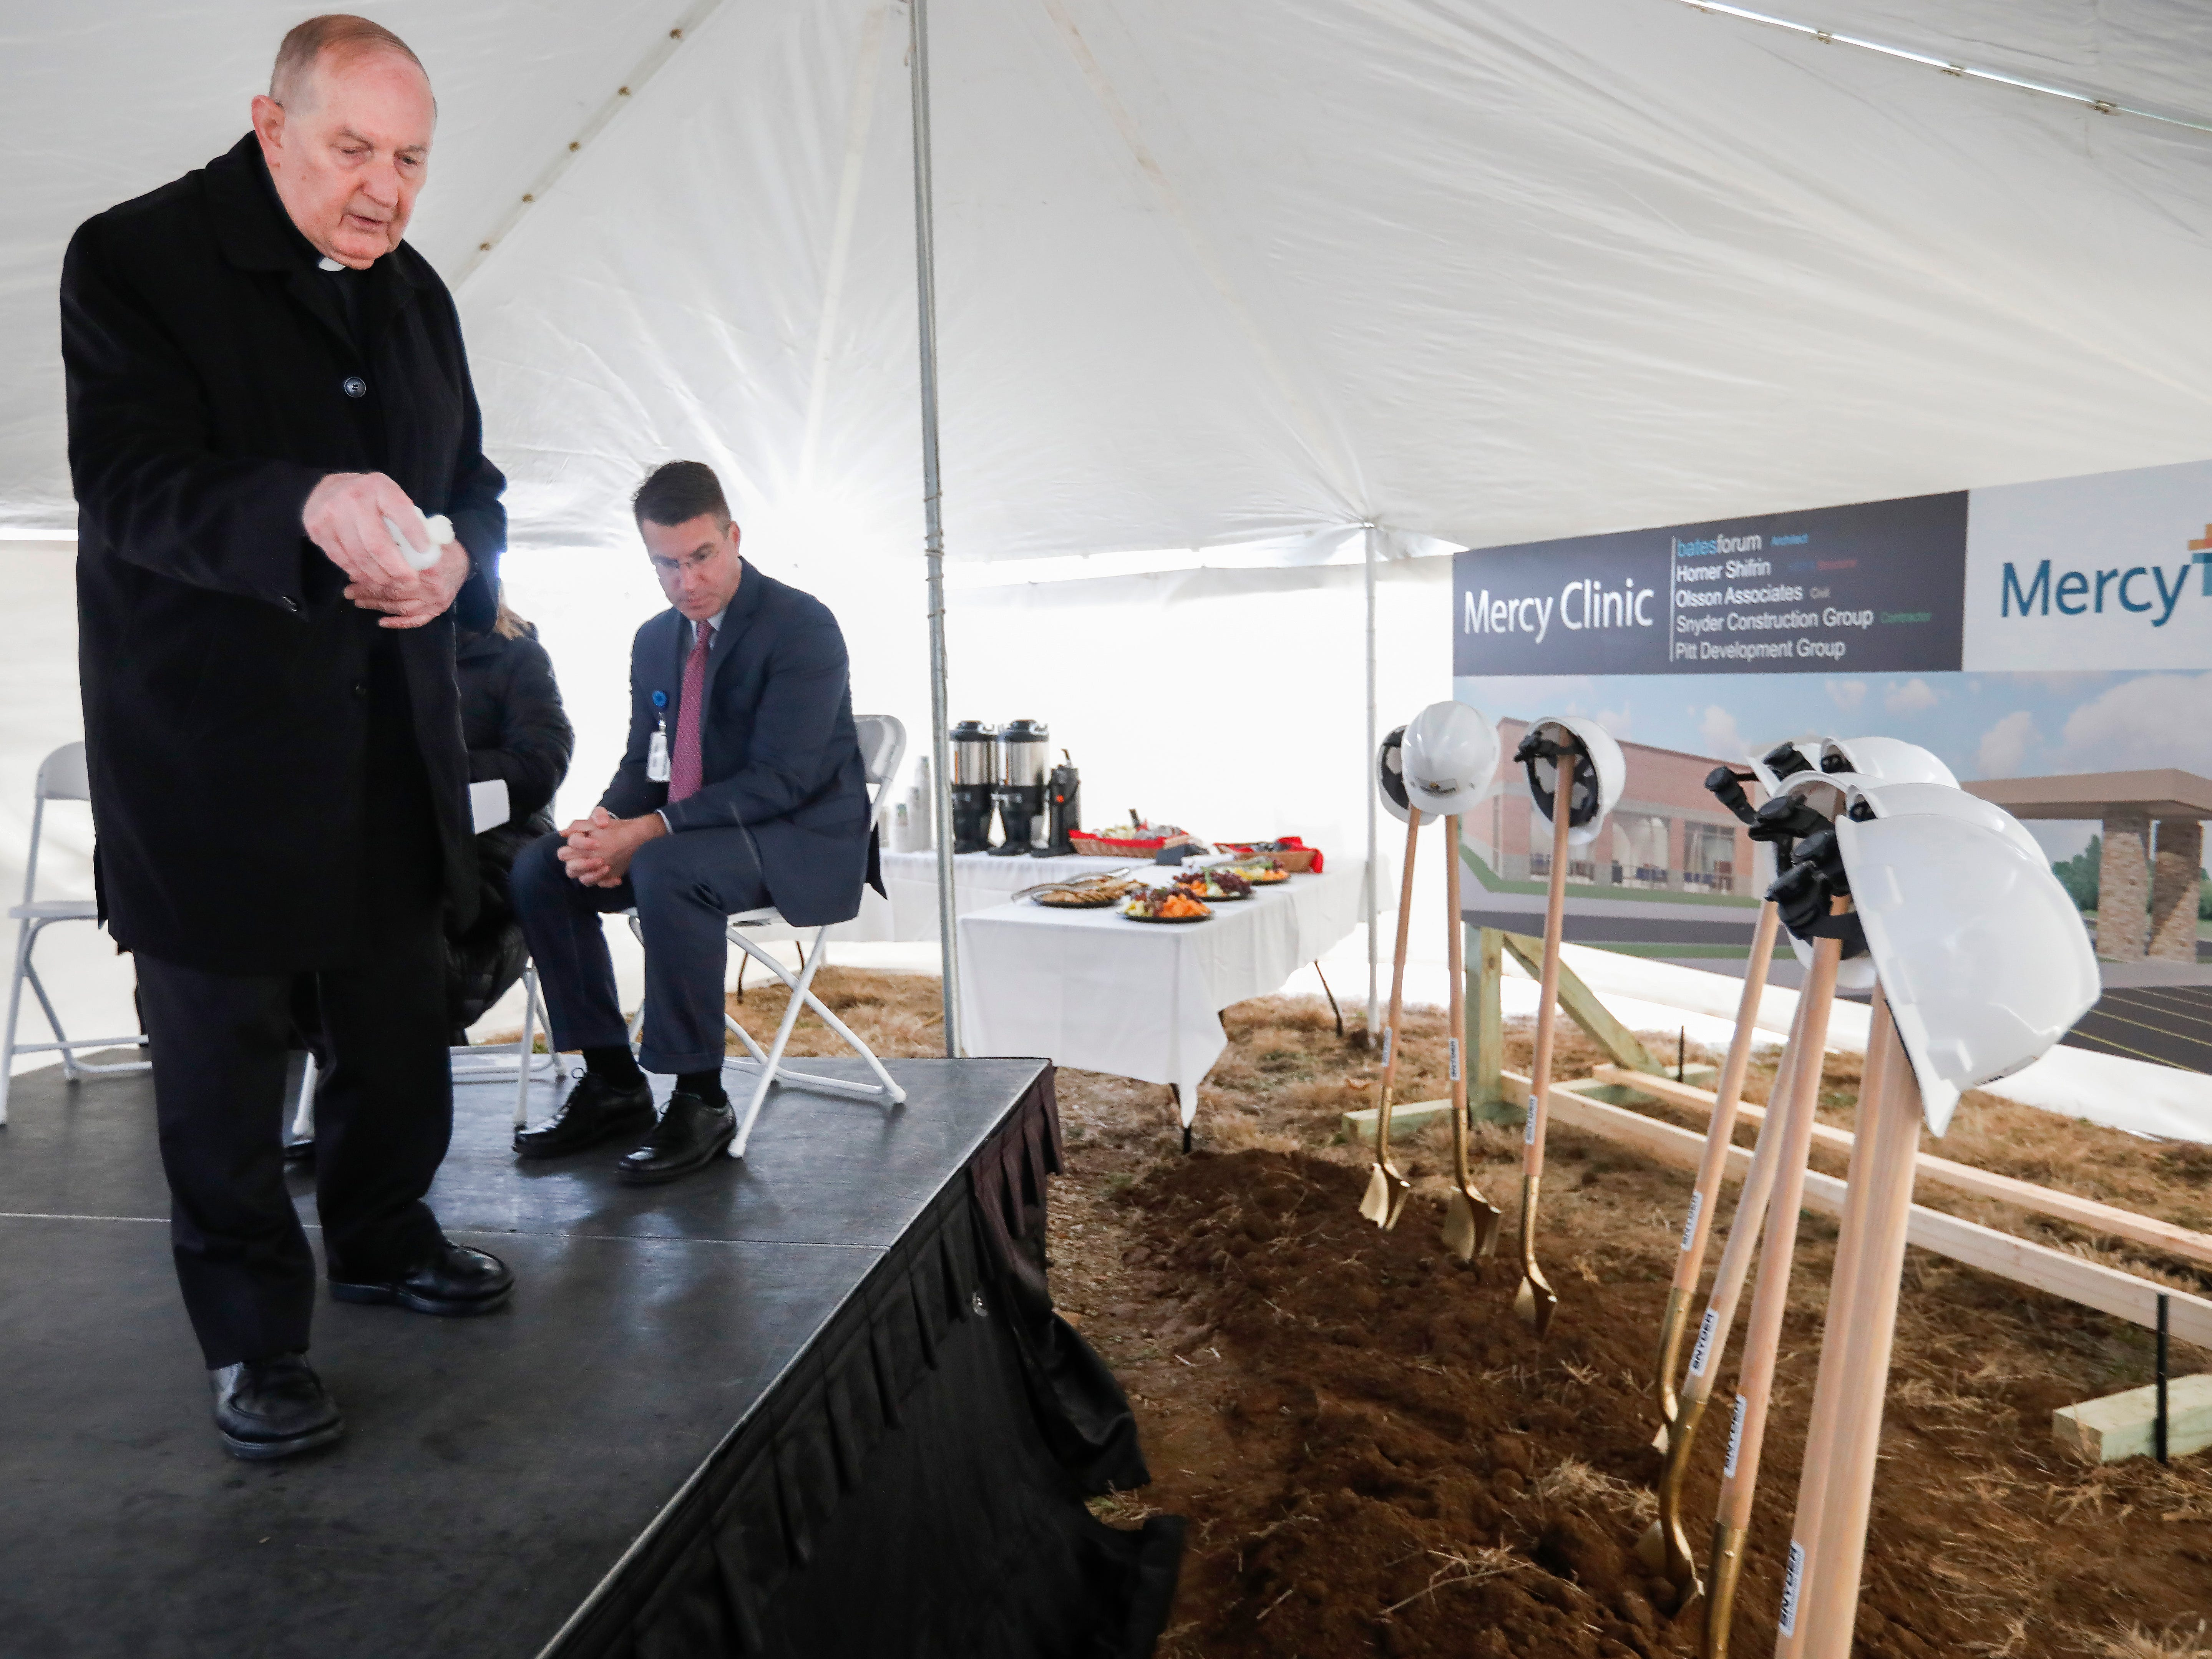 Msgr. Tom Reidy blesses the ground with holy water during a groundbreaking ceremony for the new Mercy clinic which will be located at Republic Road and Scenic Avenue.